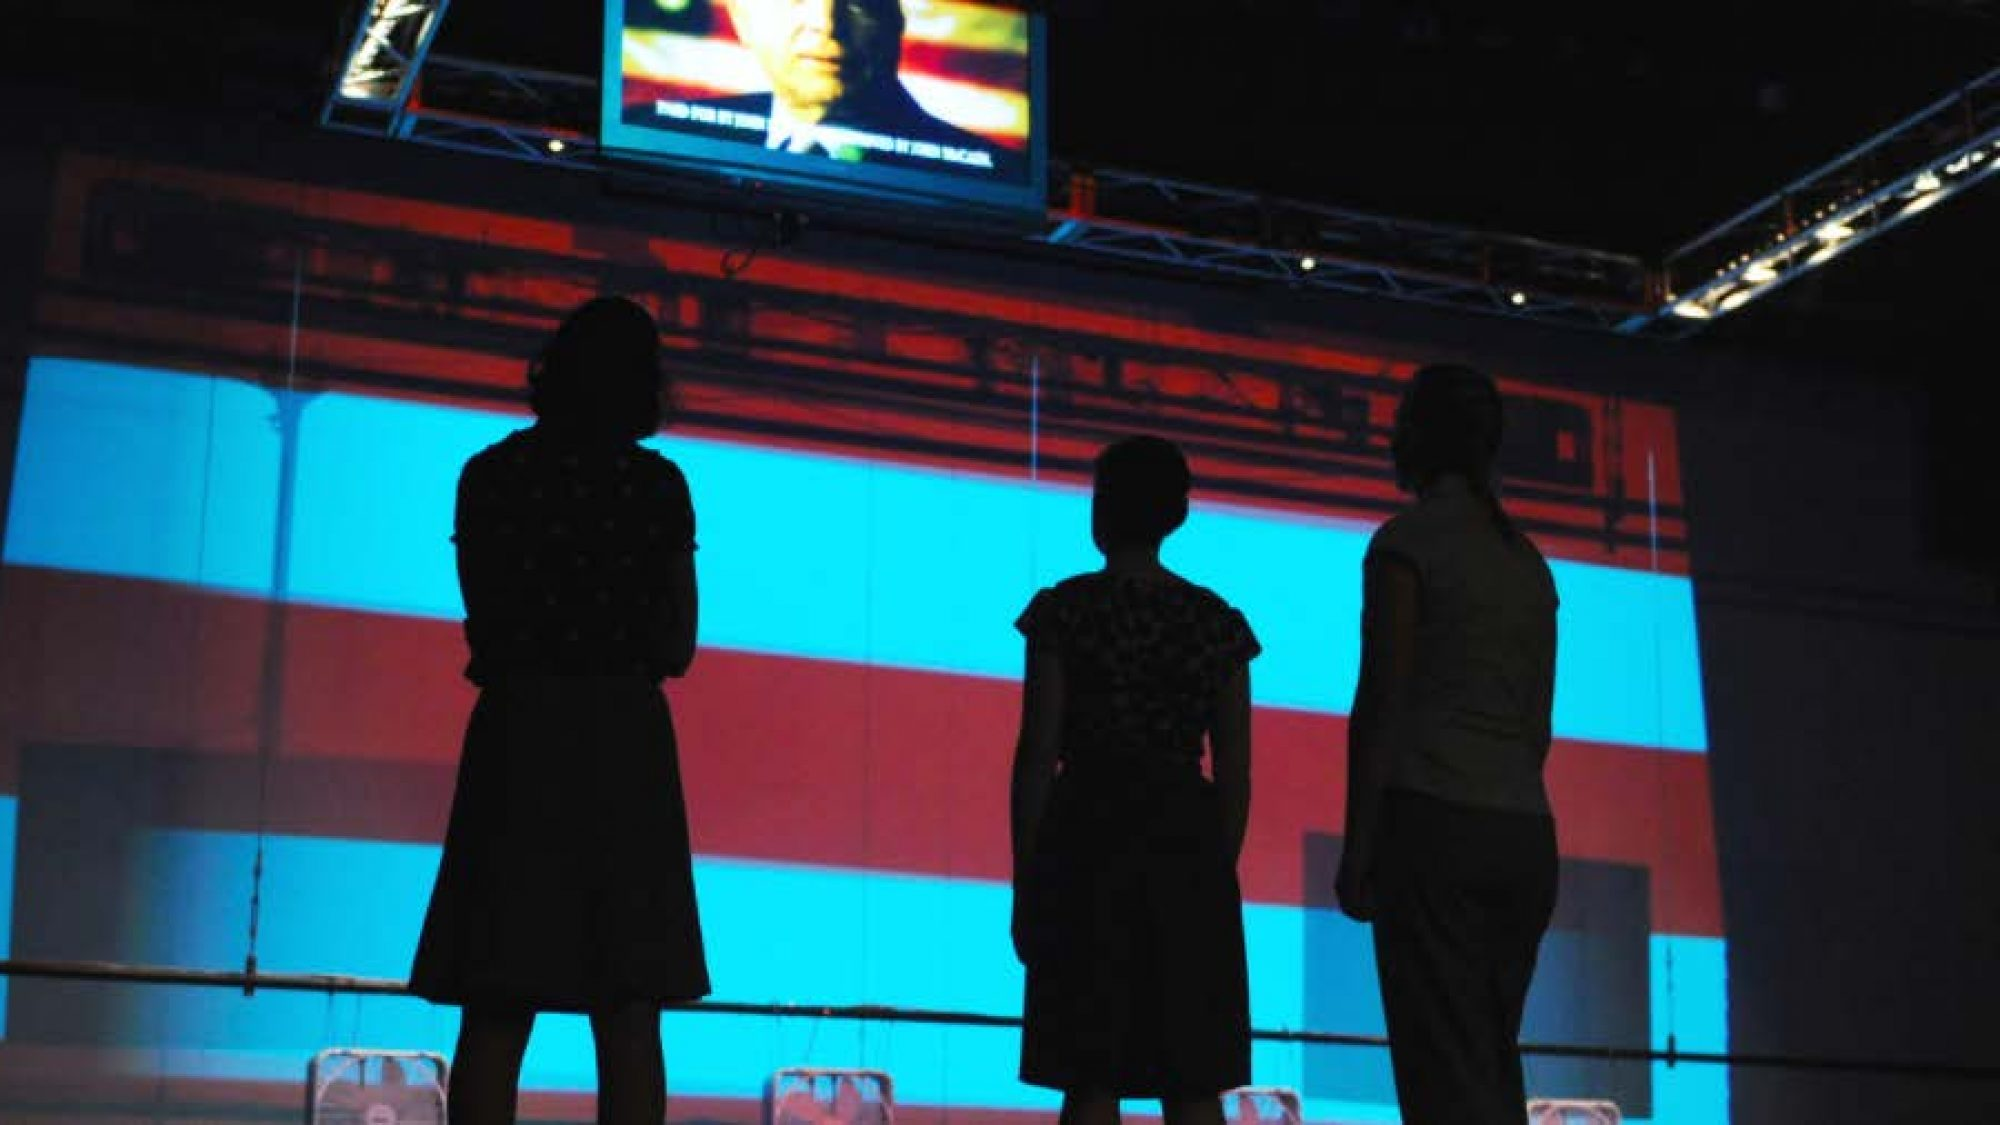 Student cast members in silhouette look up at a TV screen showing a political figure speaking in front of an American flag.